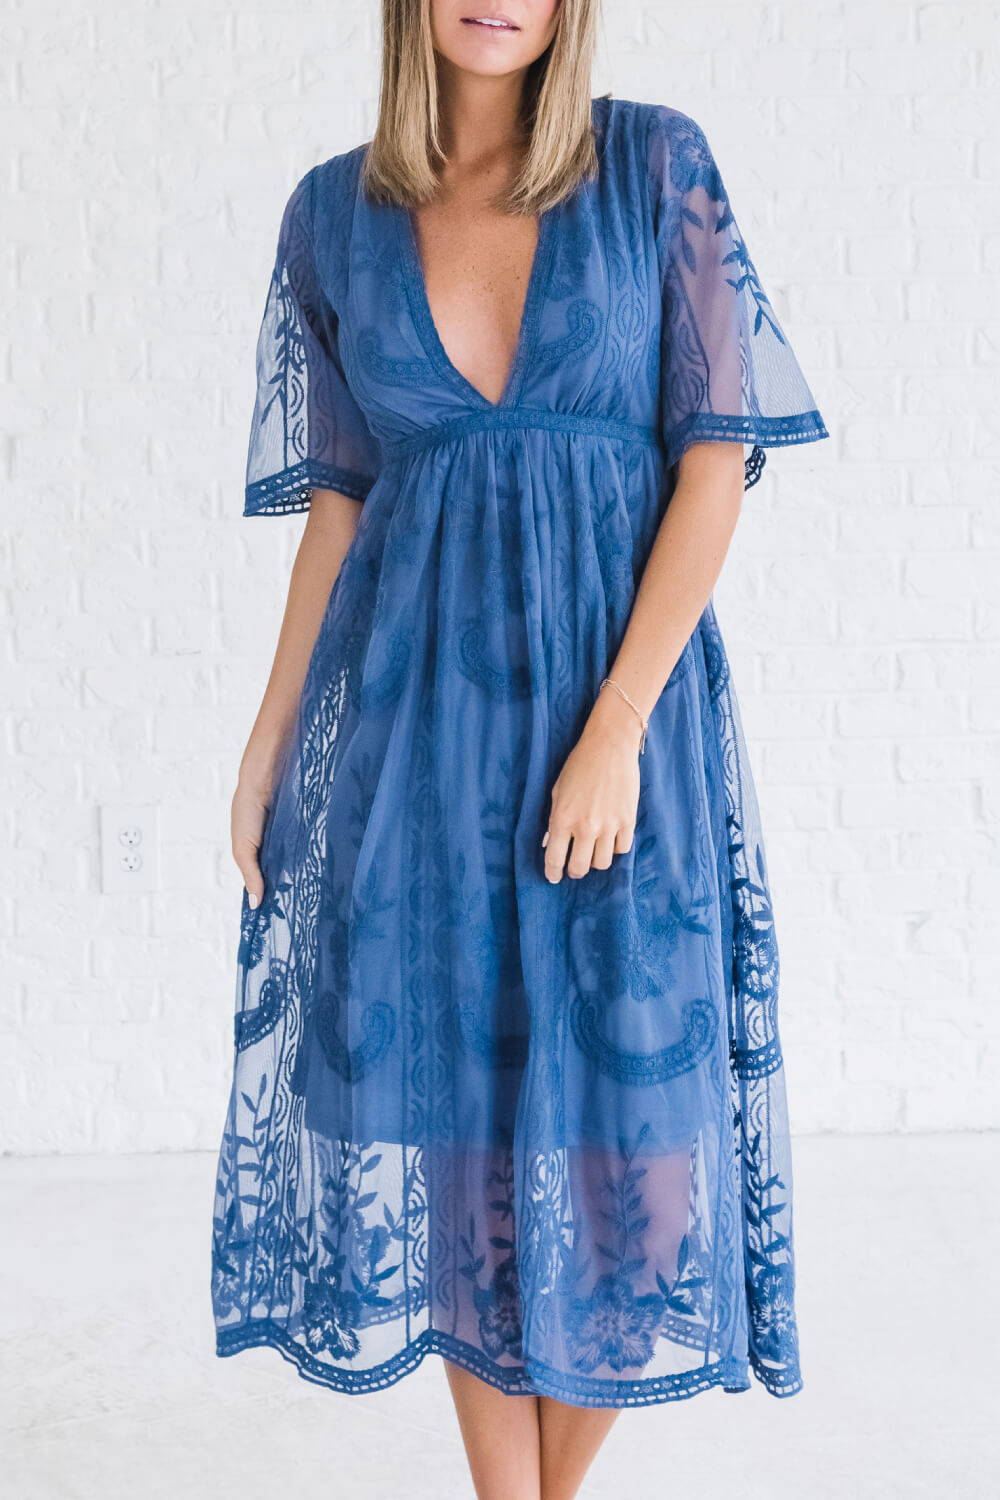 Summer Reading List 2018 royal blue lace dress